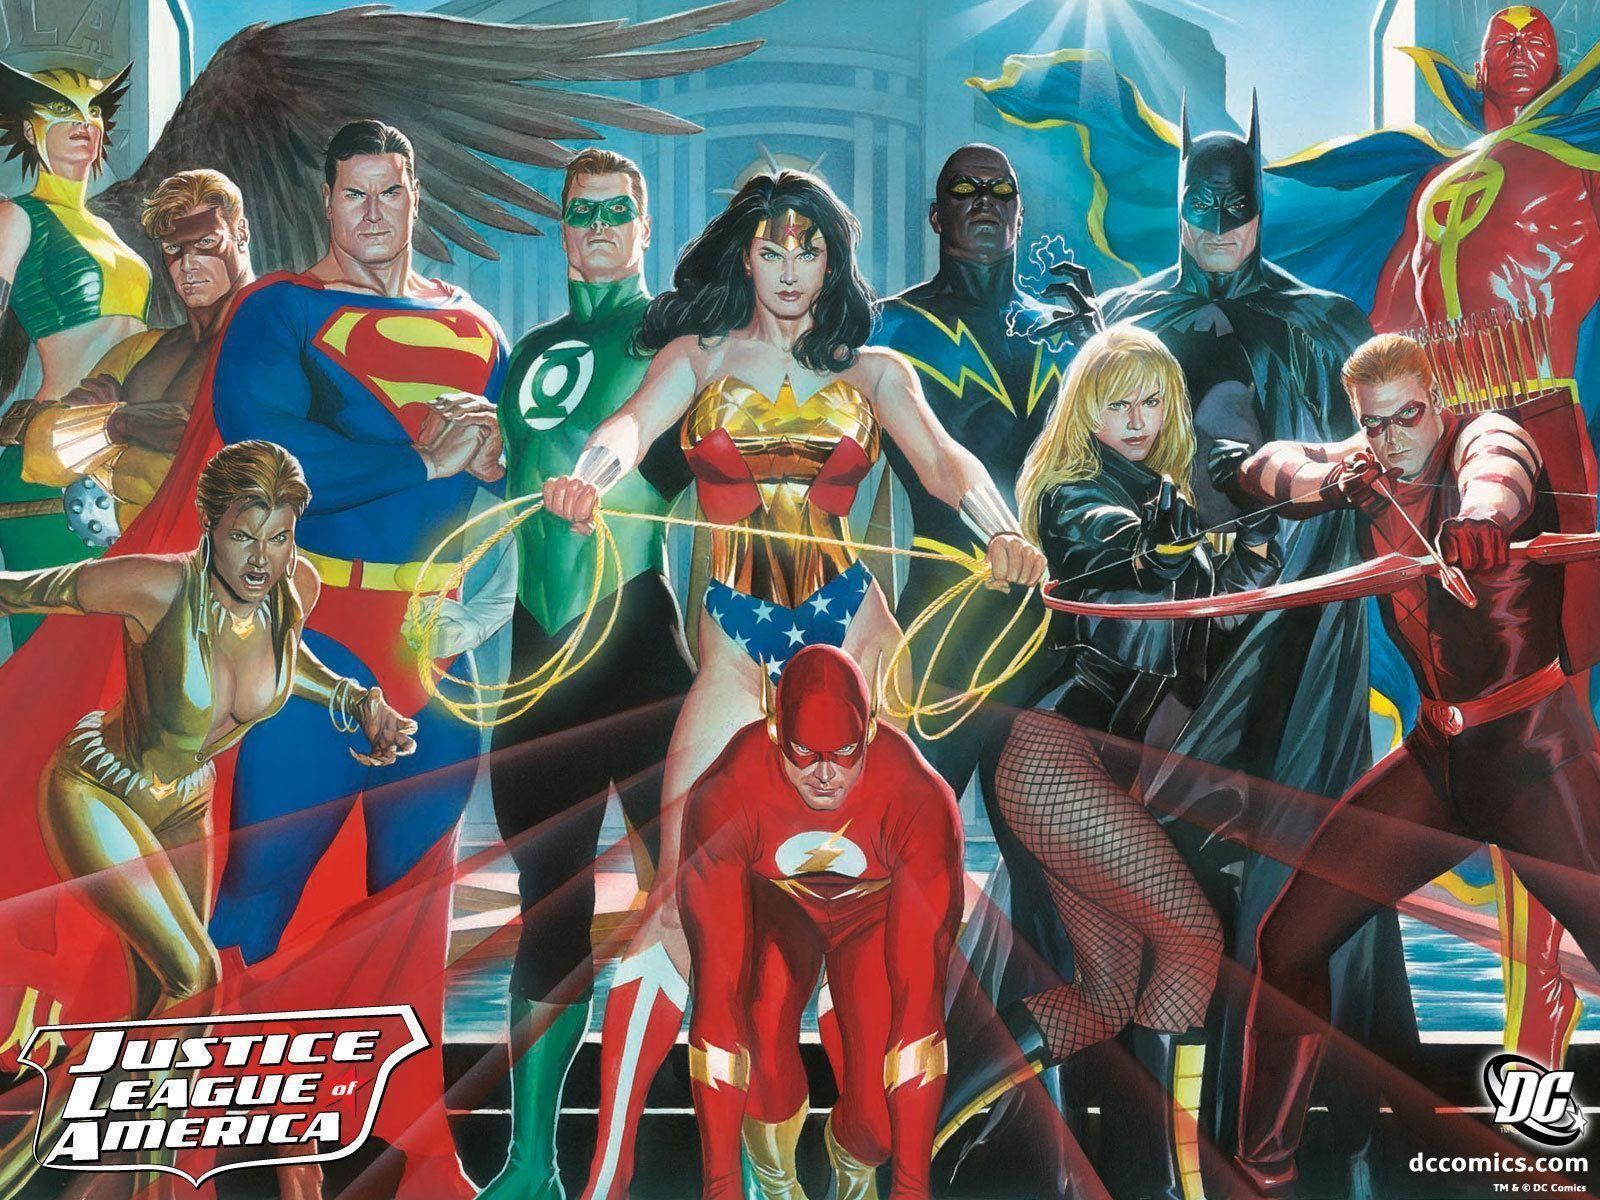 Cartoon Excellence – Justice League